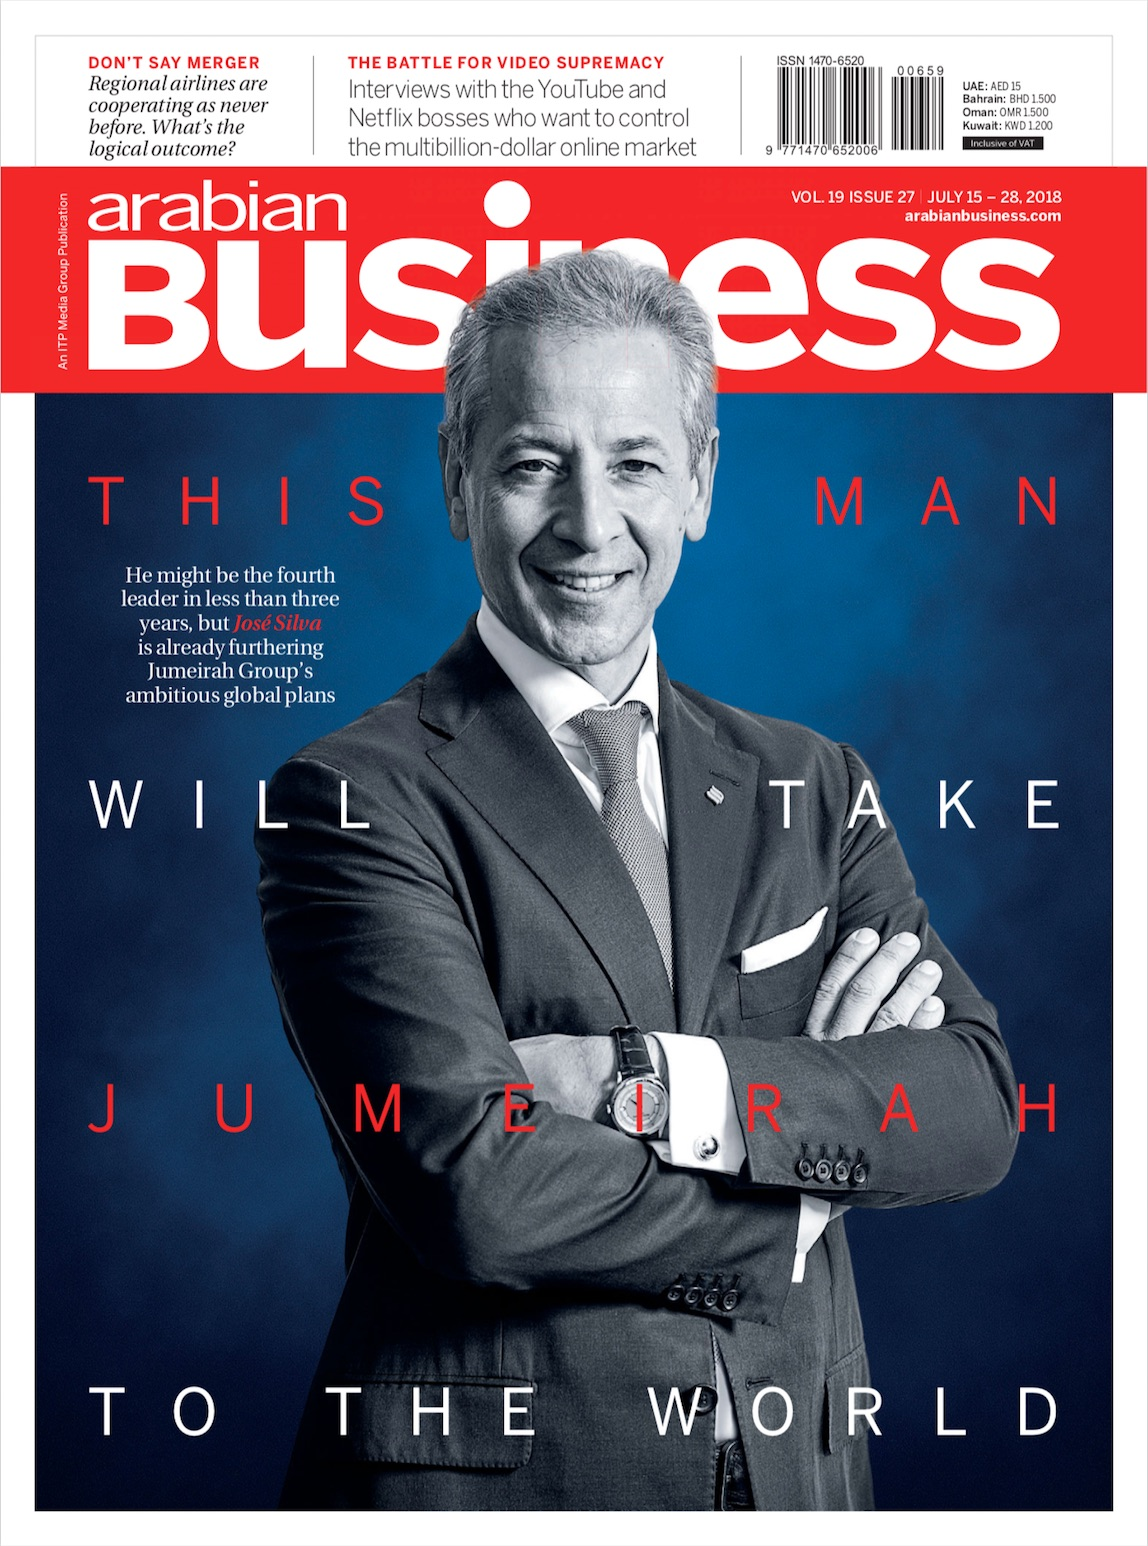 Arabian Business - July 2018